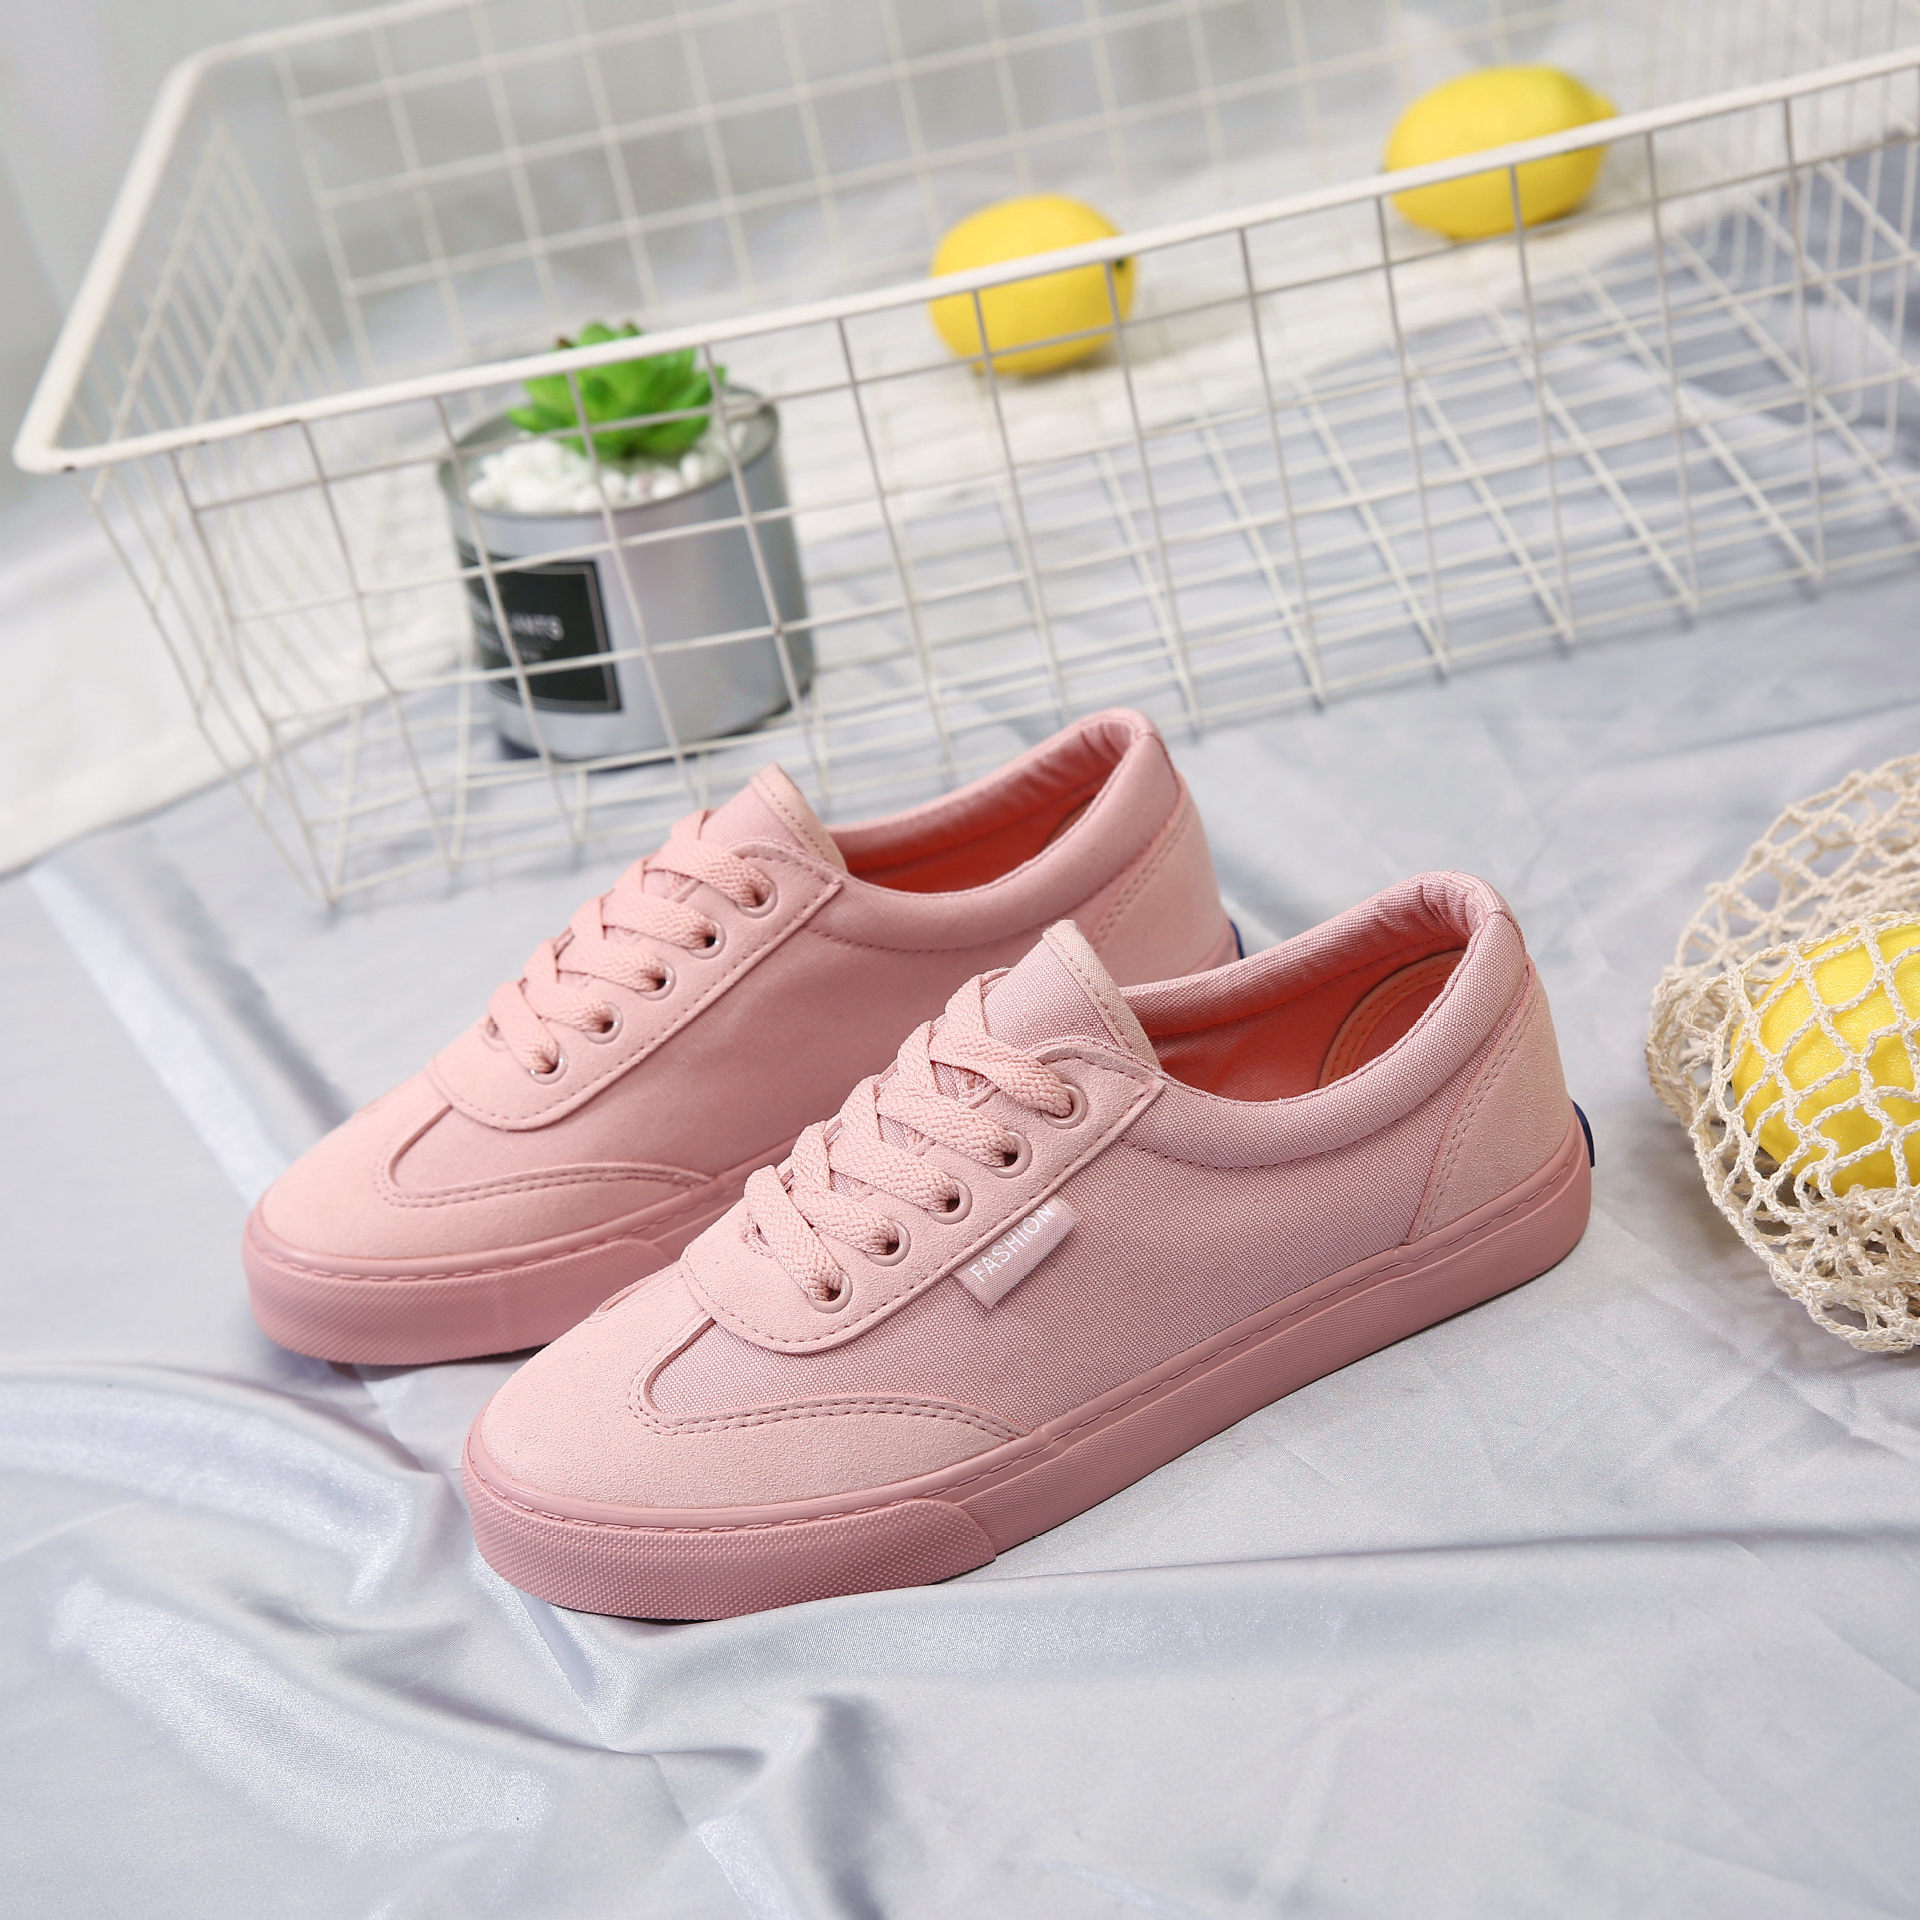 Women Canvas Shoes Vulcanized Shoes Pink Sneakers 2018 New Spring Autumn Casual Shoes Flats Solid Color Chaussure Femme 35-40 vintage embroidery women flats chinese floral canvas embroidered shoes national old beijing cloth single dance soft flats